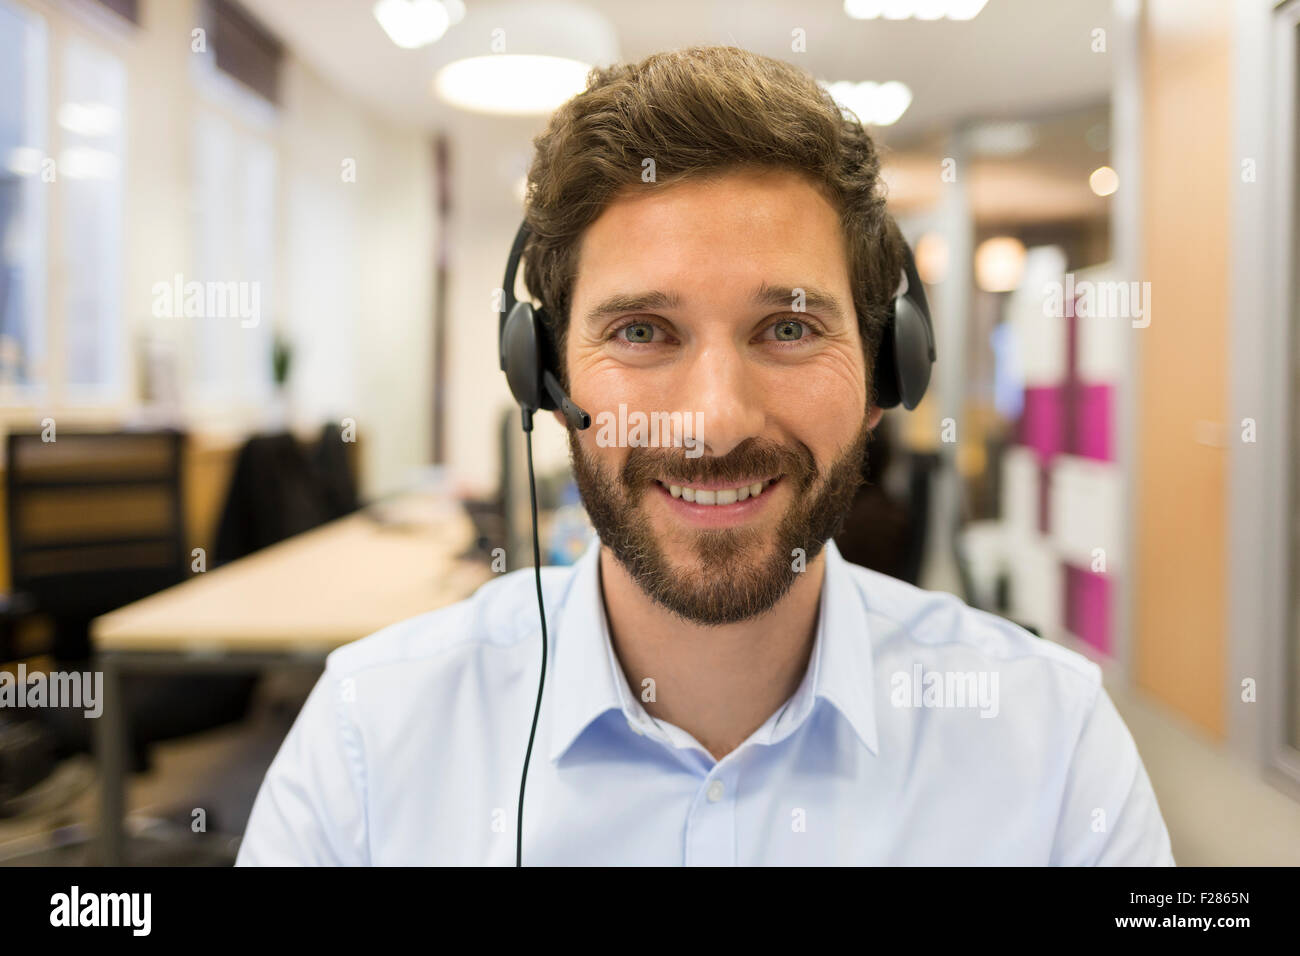 Portrait of smiling man wearing headset in office Banque D'Images